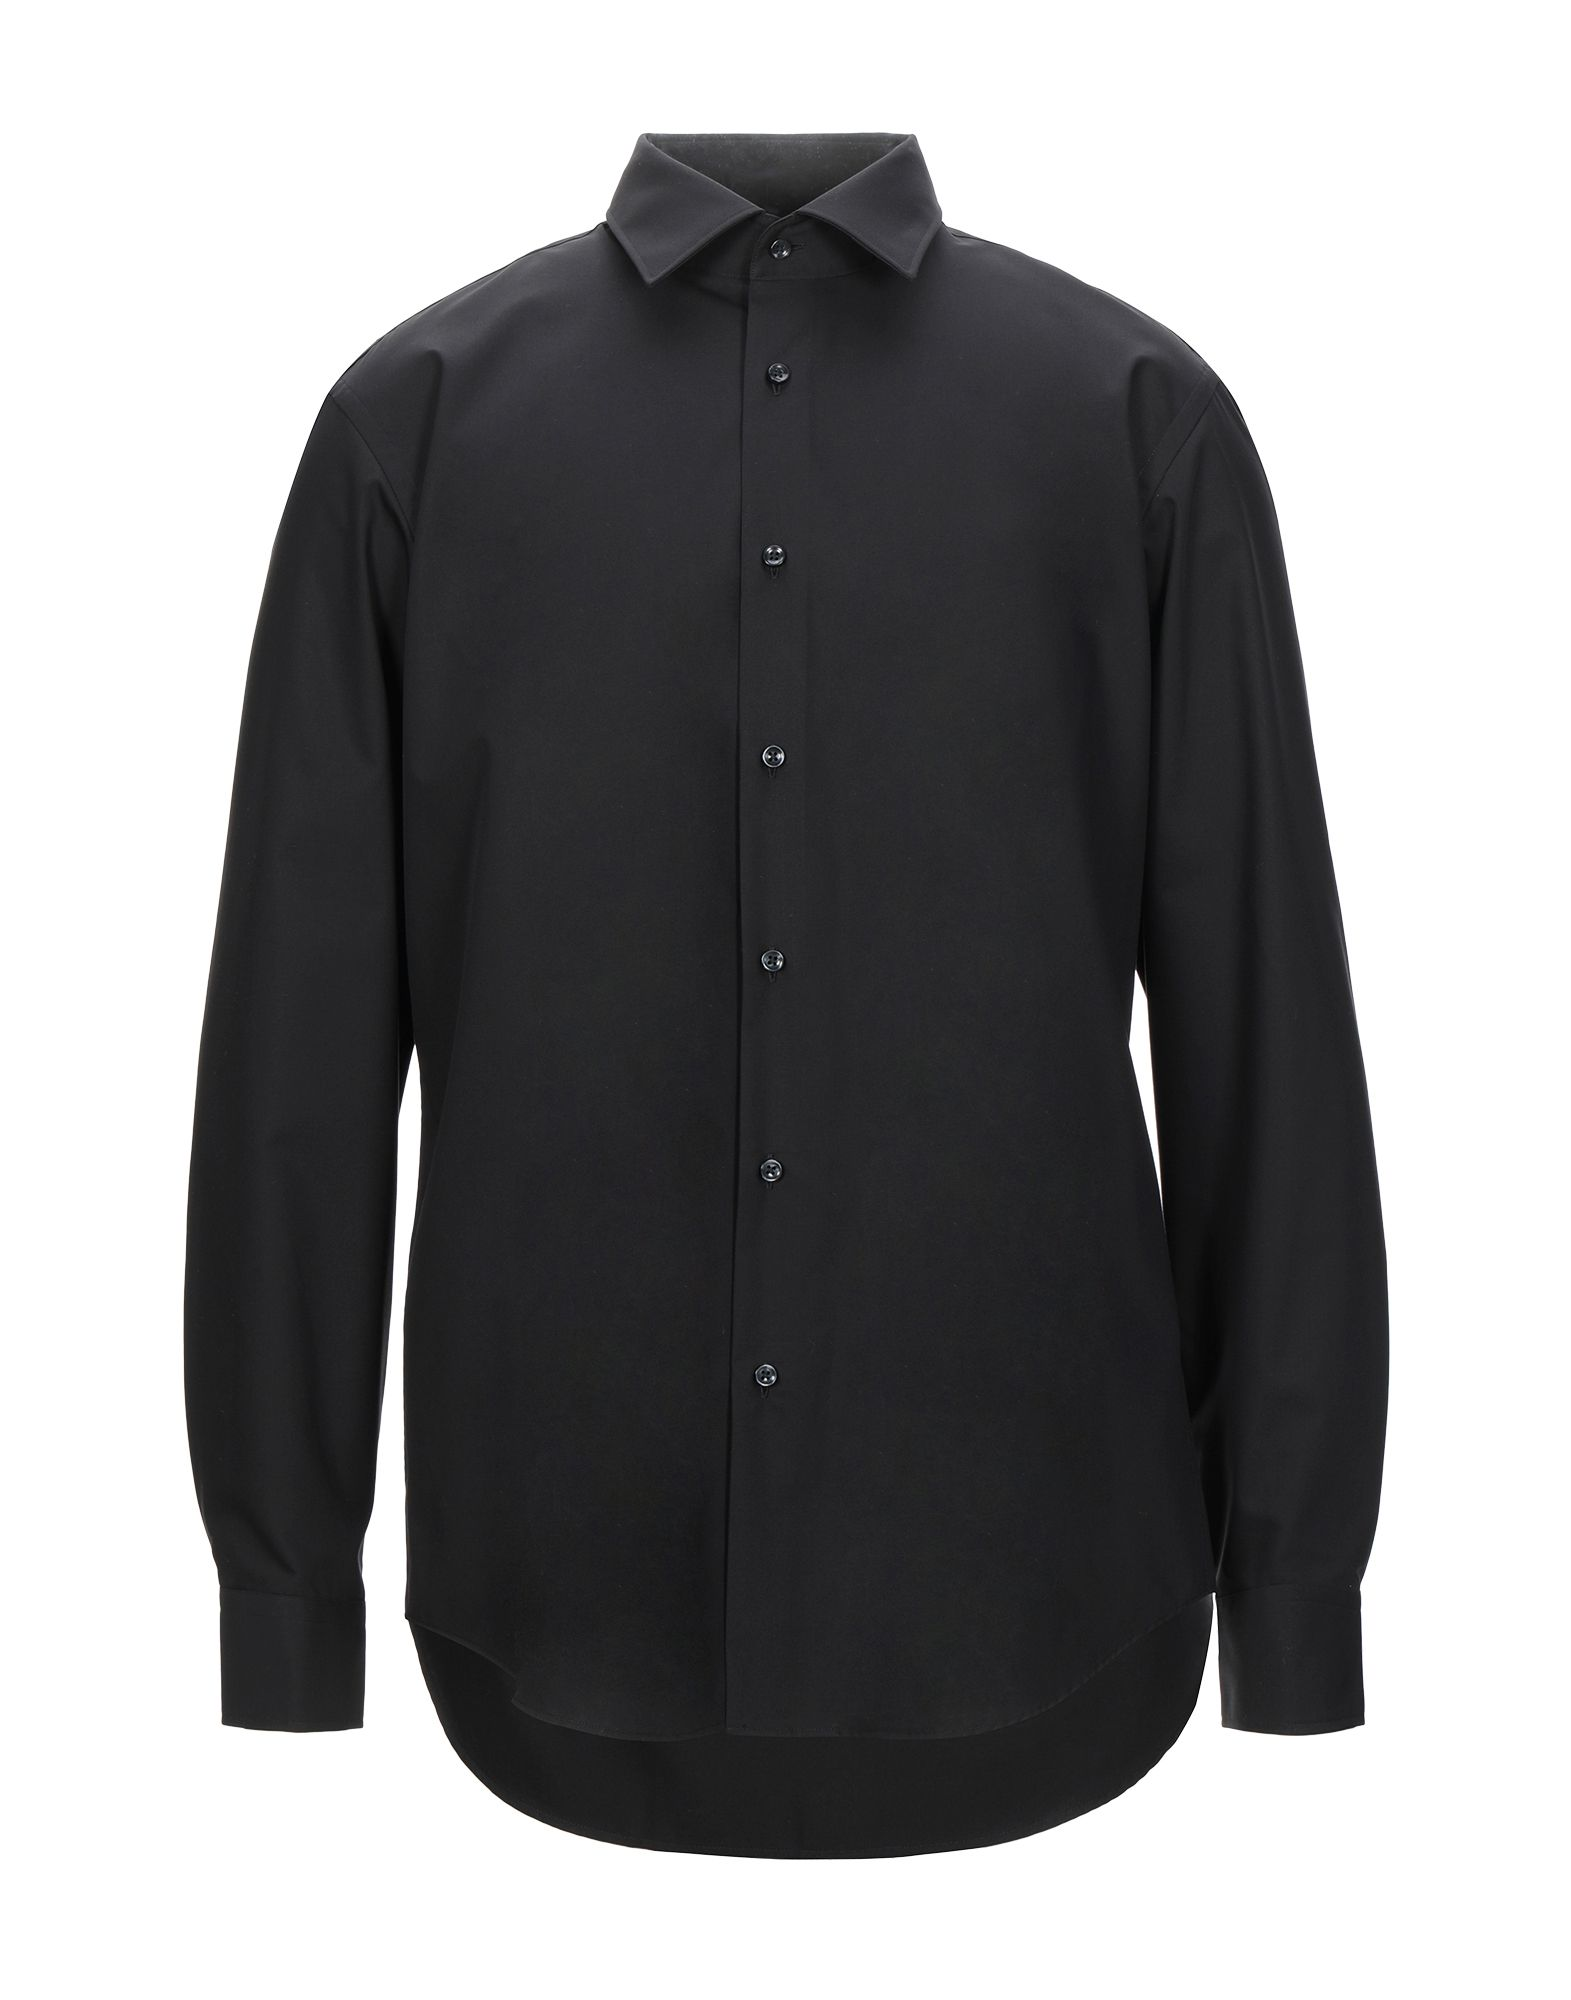 HUGO HUGO BOSS Shirts - Item 38824753